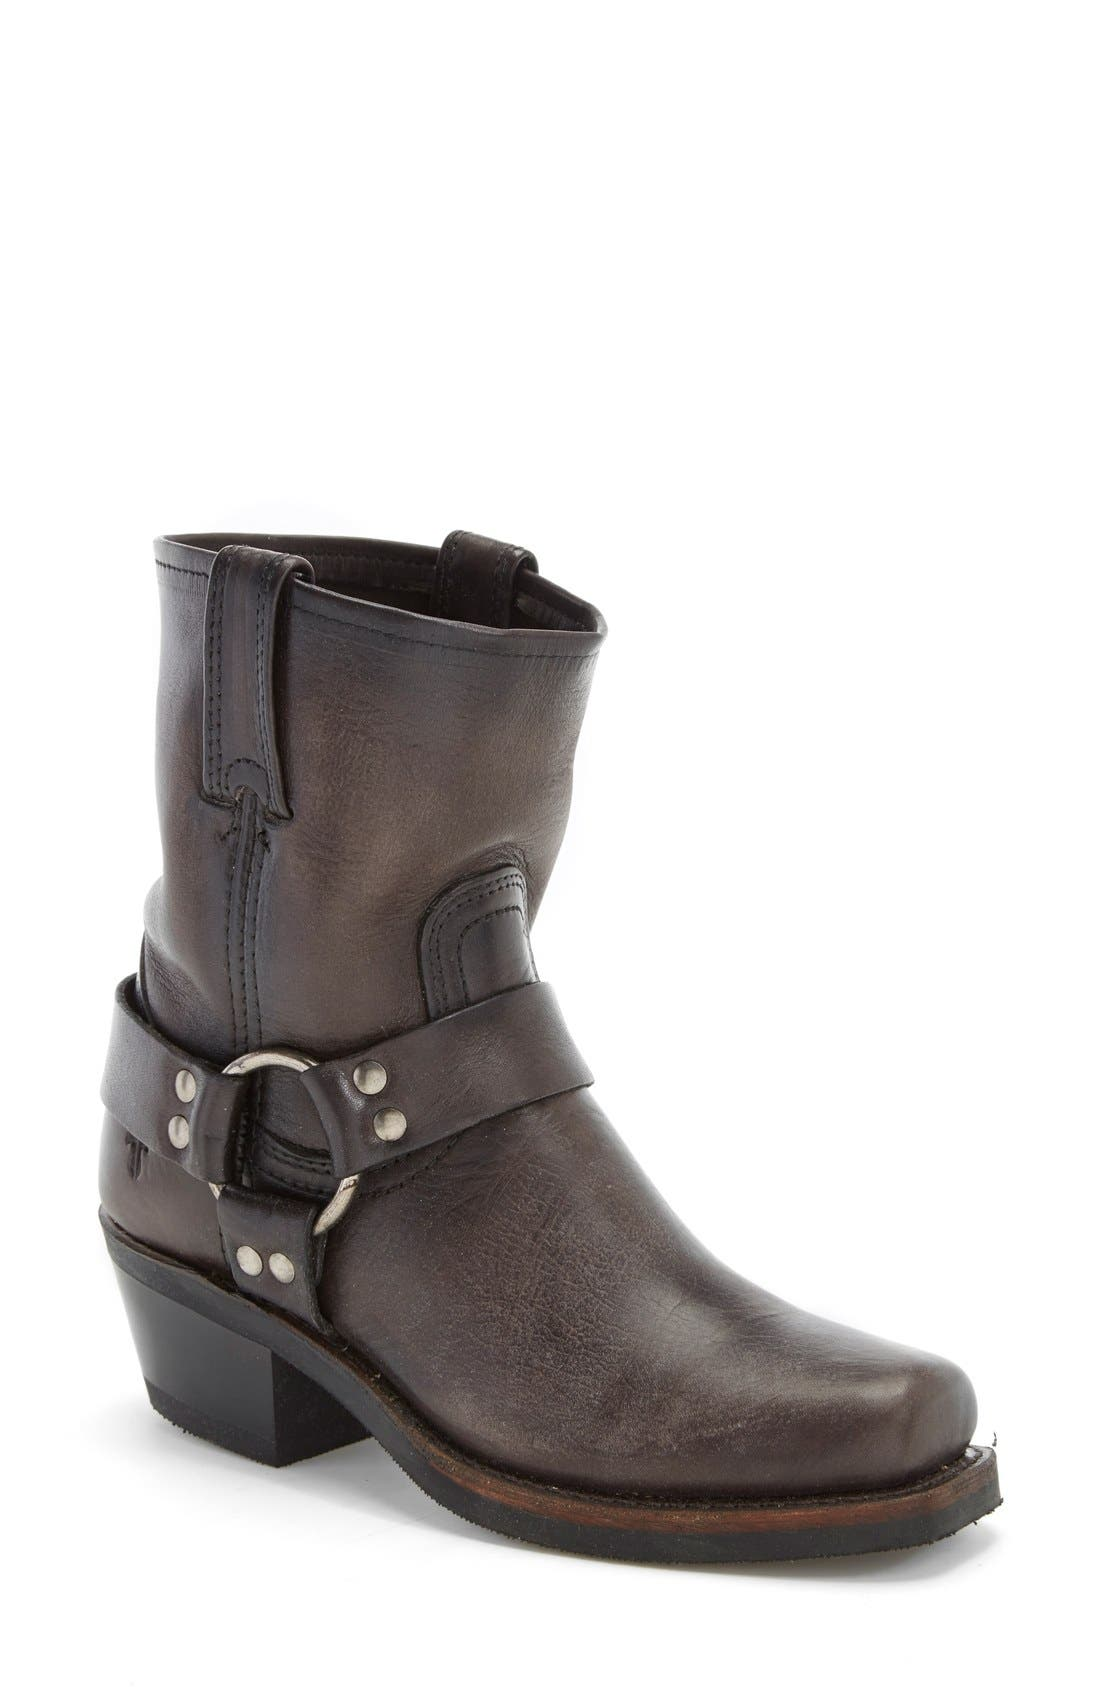 Alternate Image 1 Selected - Frye 'Harness 8R' Boot (Women)